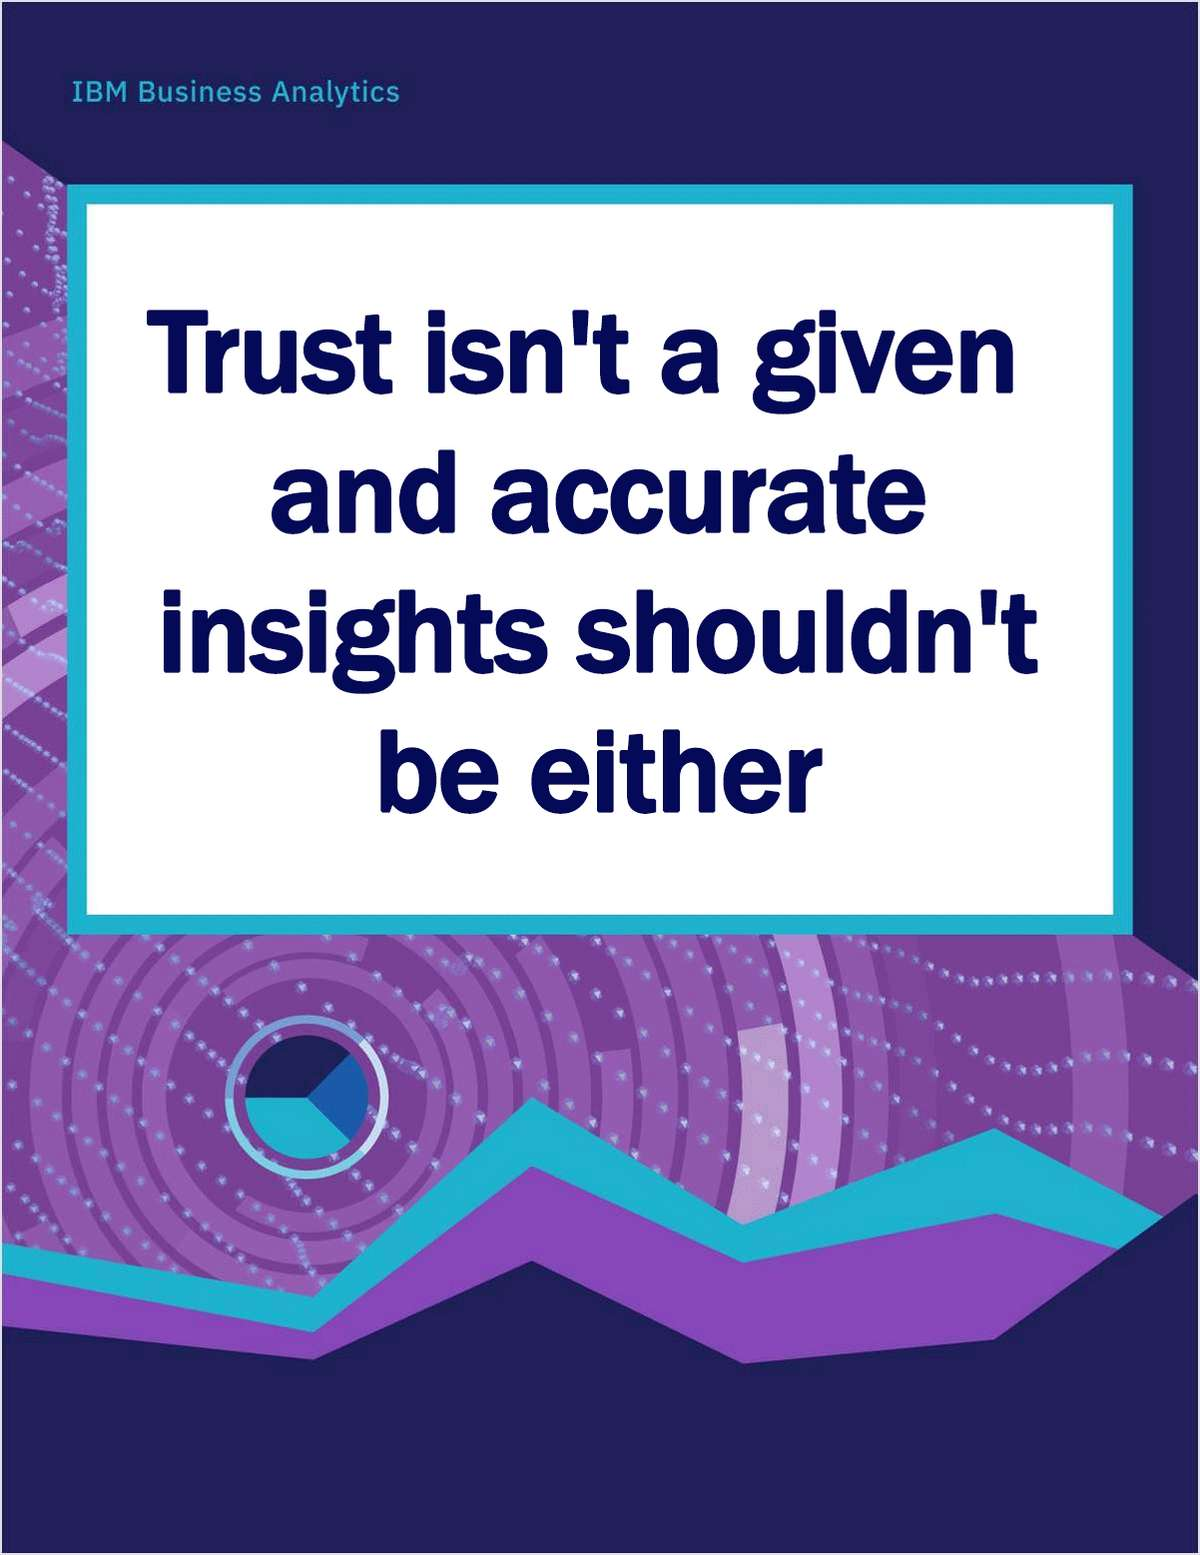 Trust isn't a given and accurate insights shouldn't be either